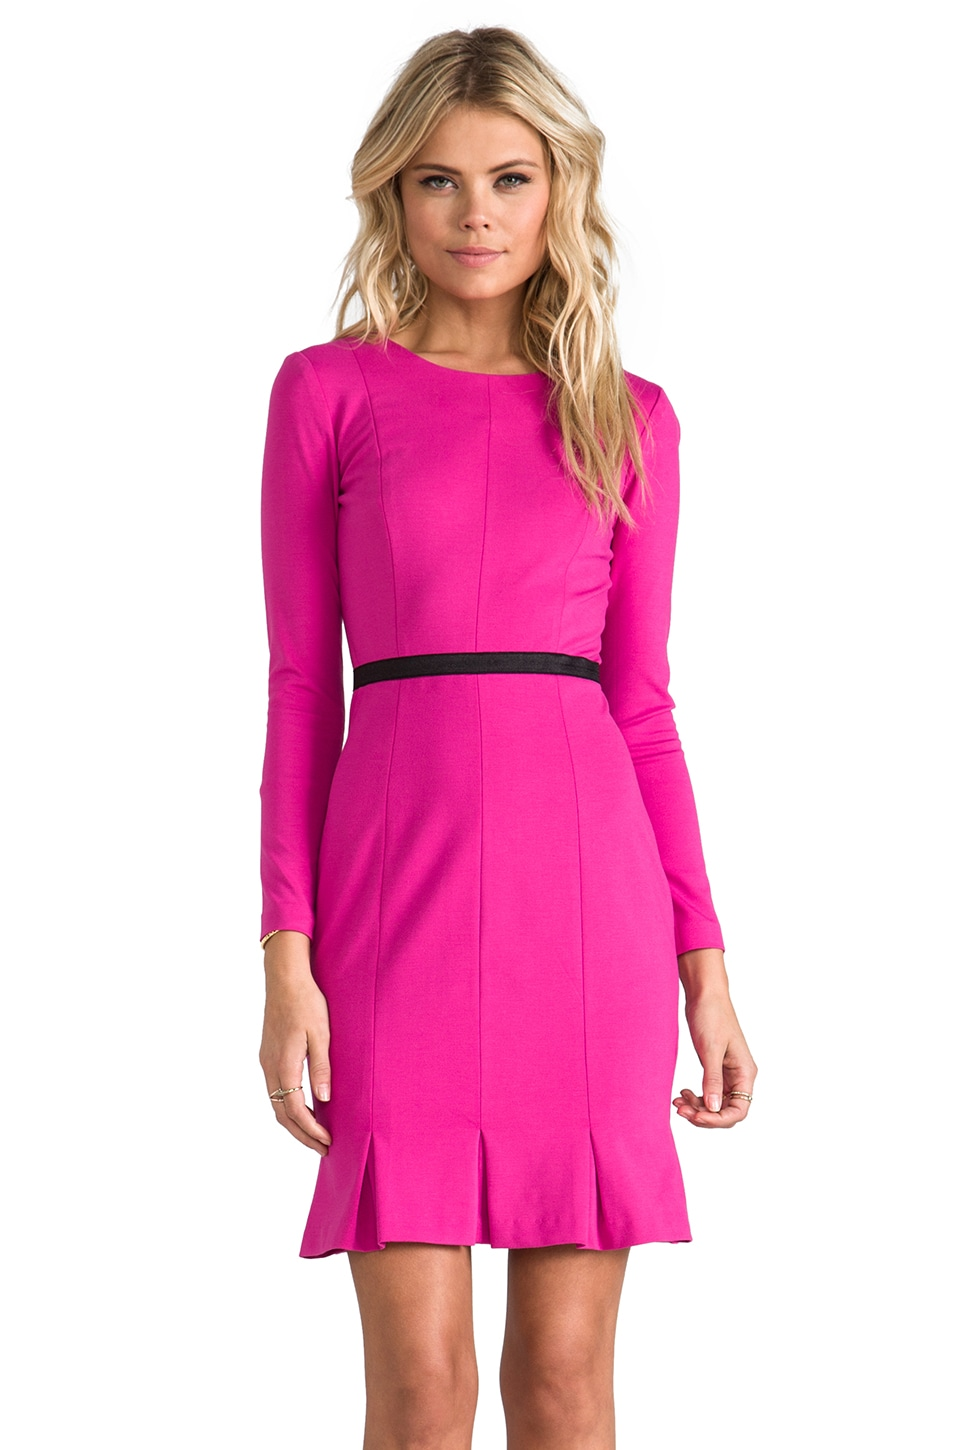 ERIN erin fetherston Edda Dress in Fuchsia/Black